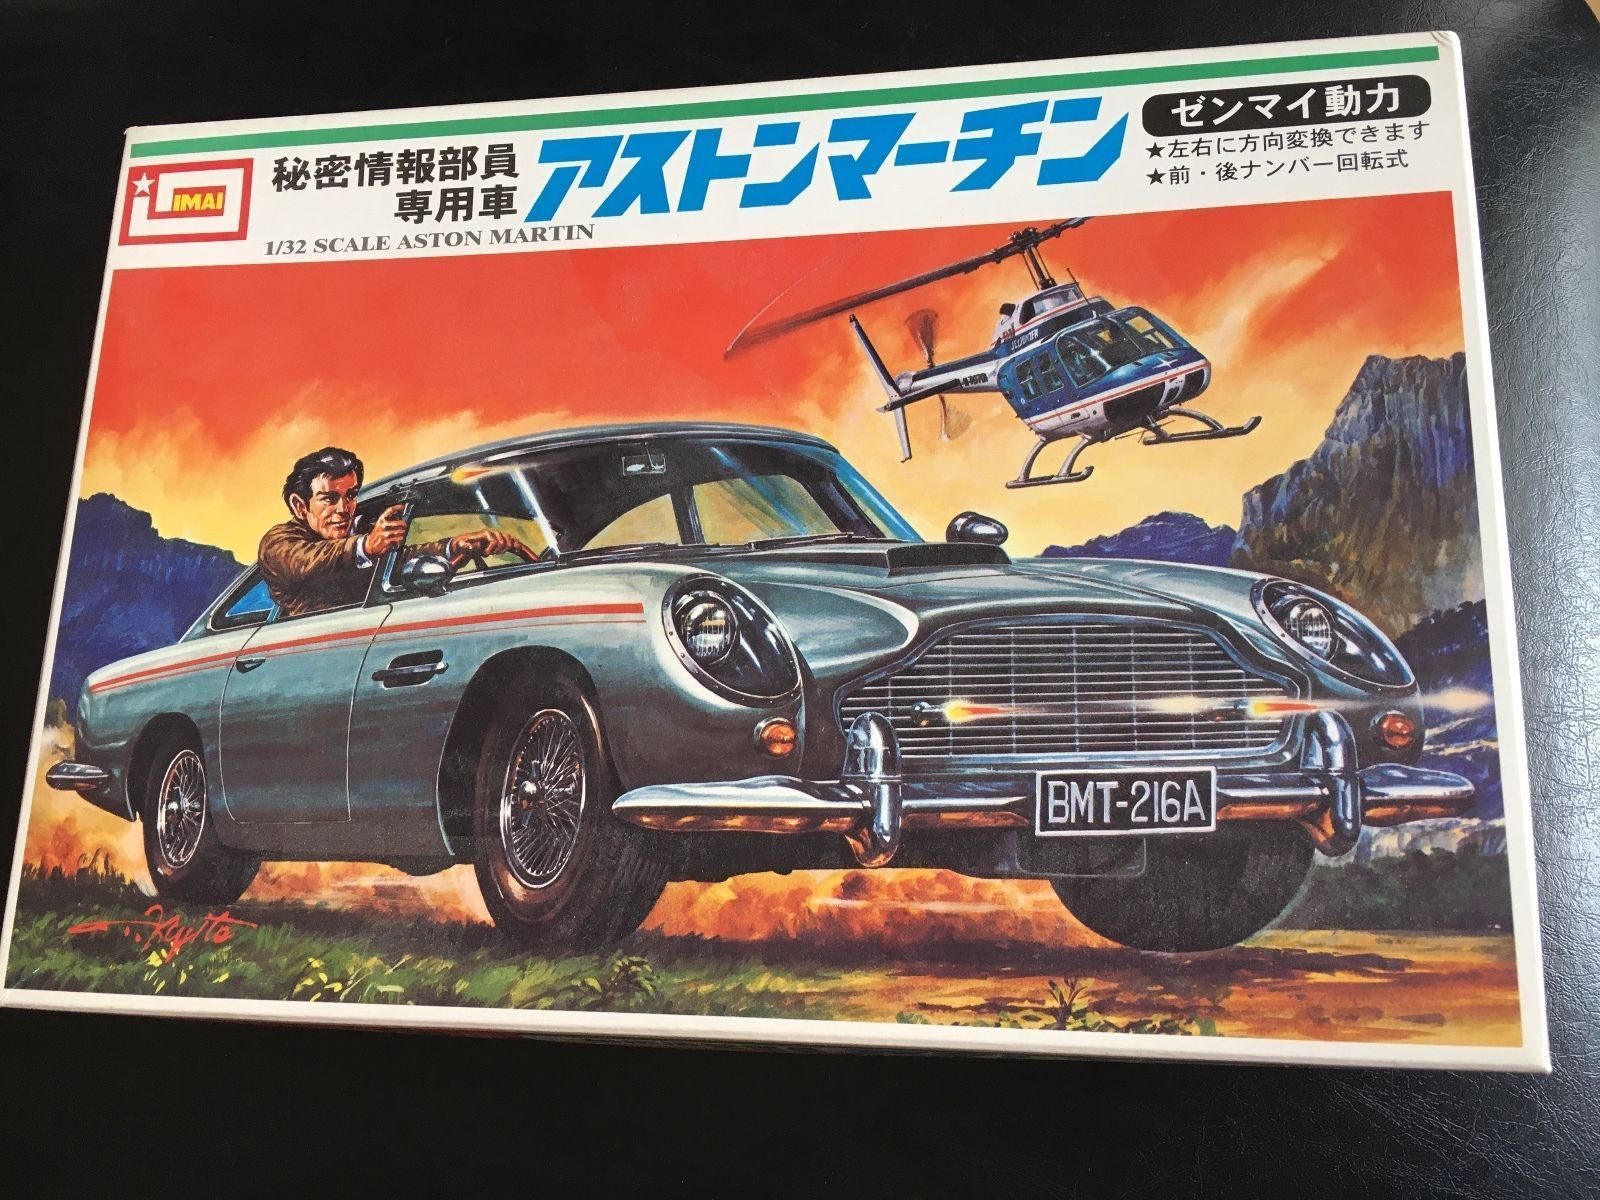 secret agent car aston martin imai japan james bond model kit